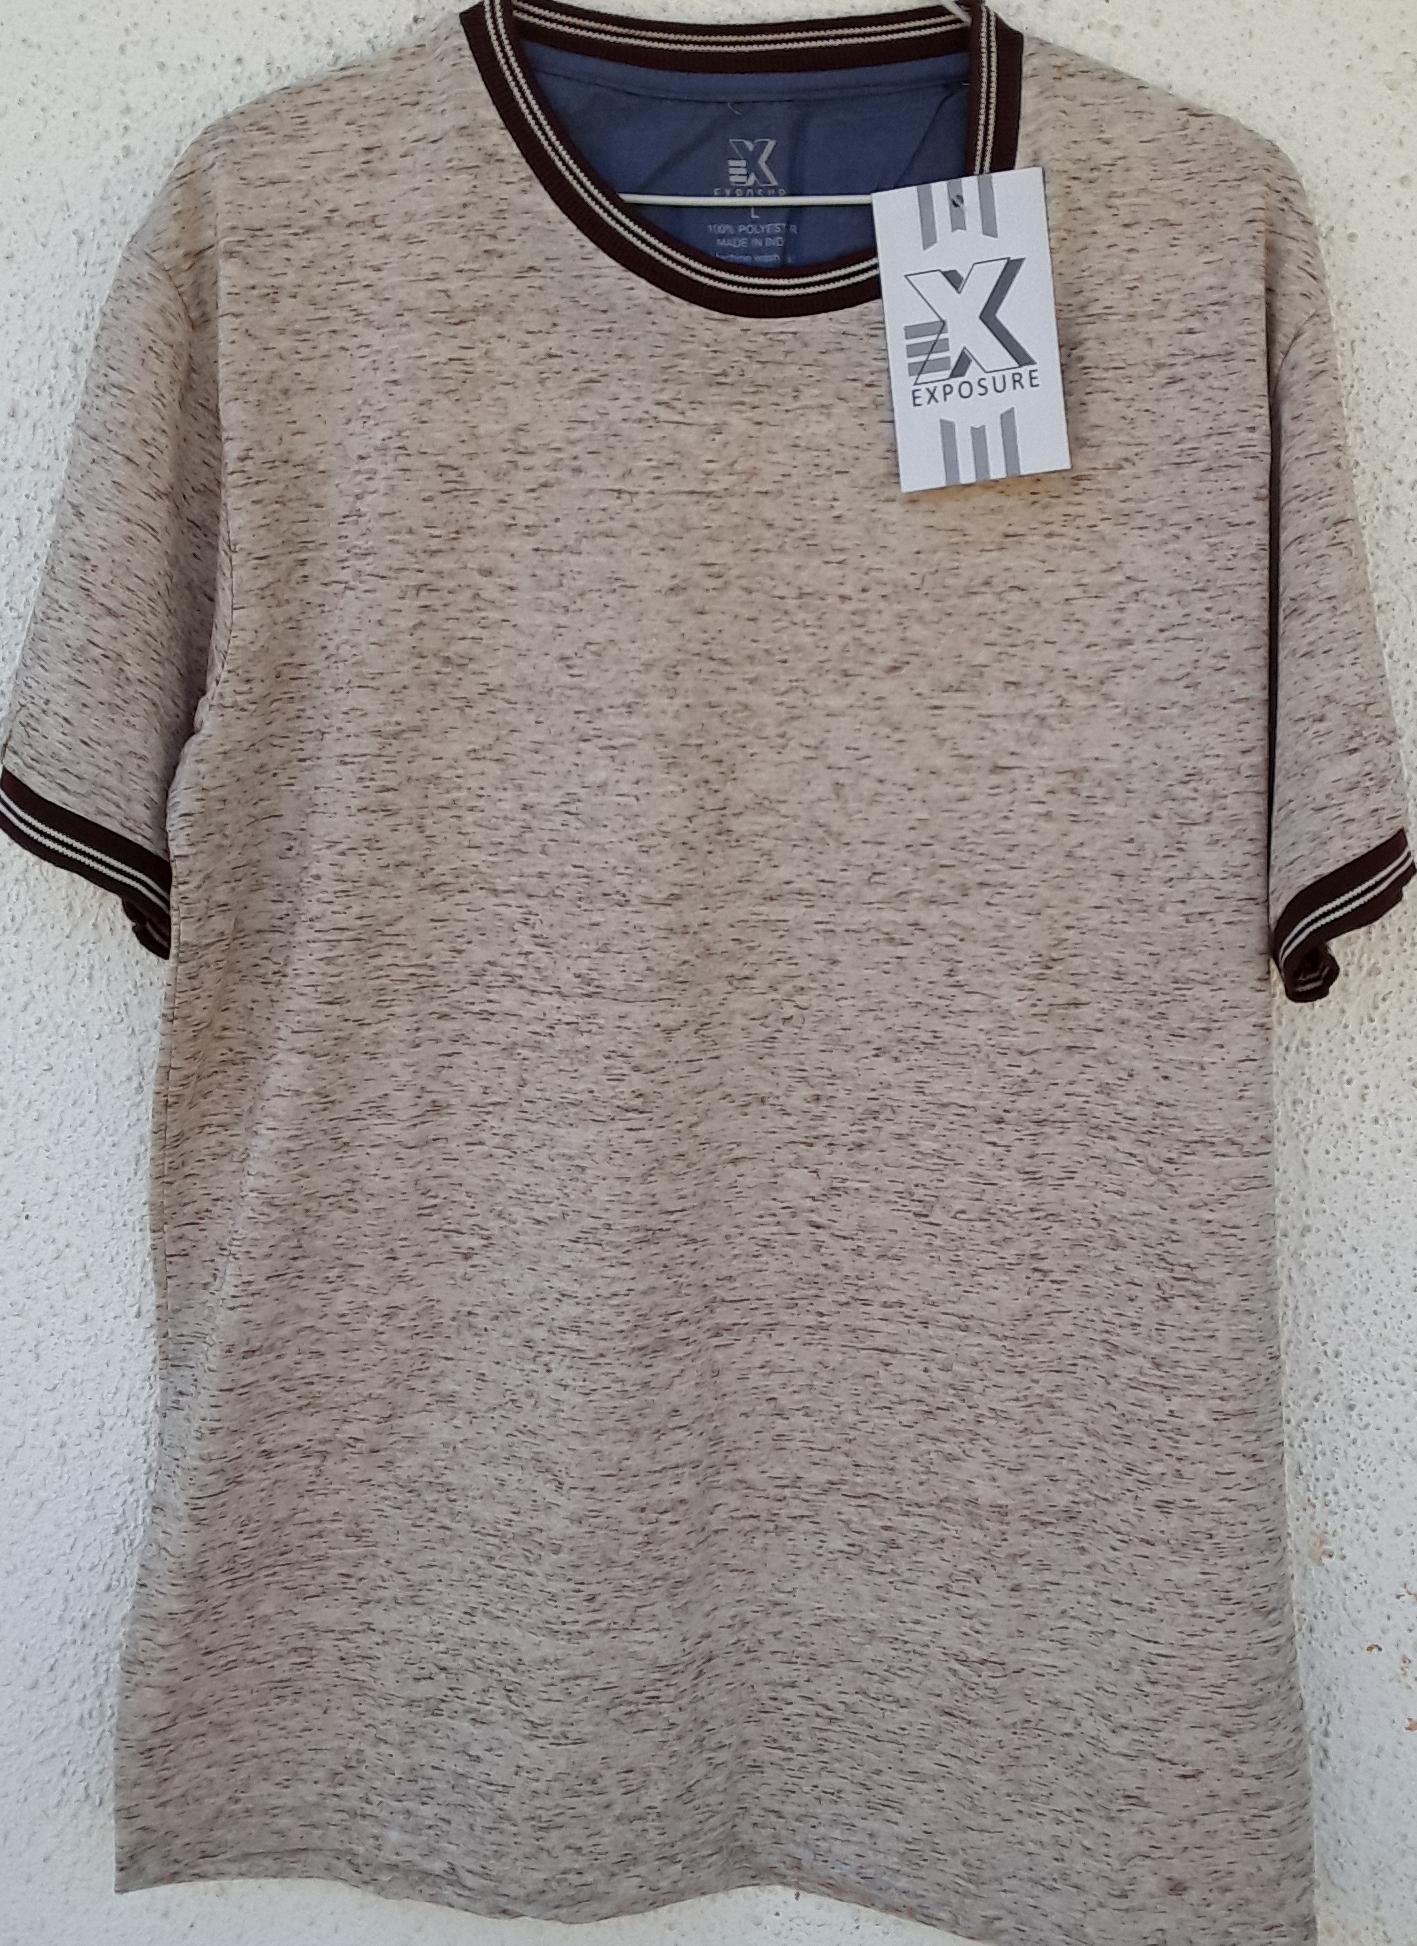 Exposure - Men's T-shirts For Incredible Price of R70.00.